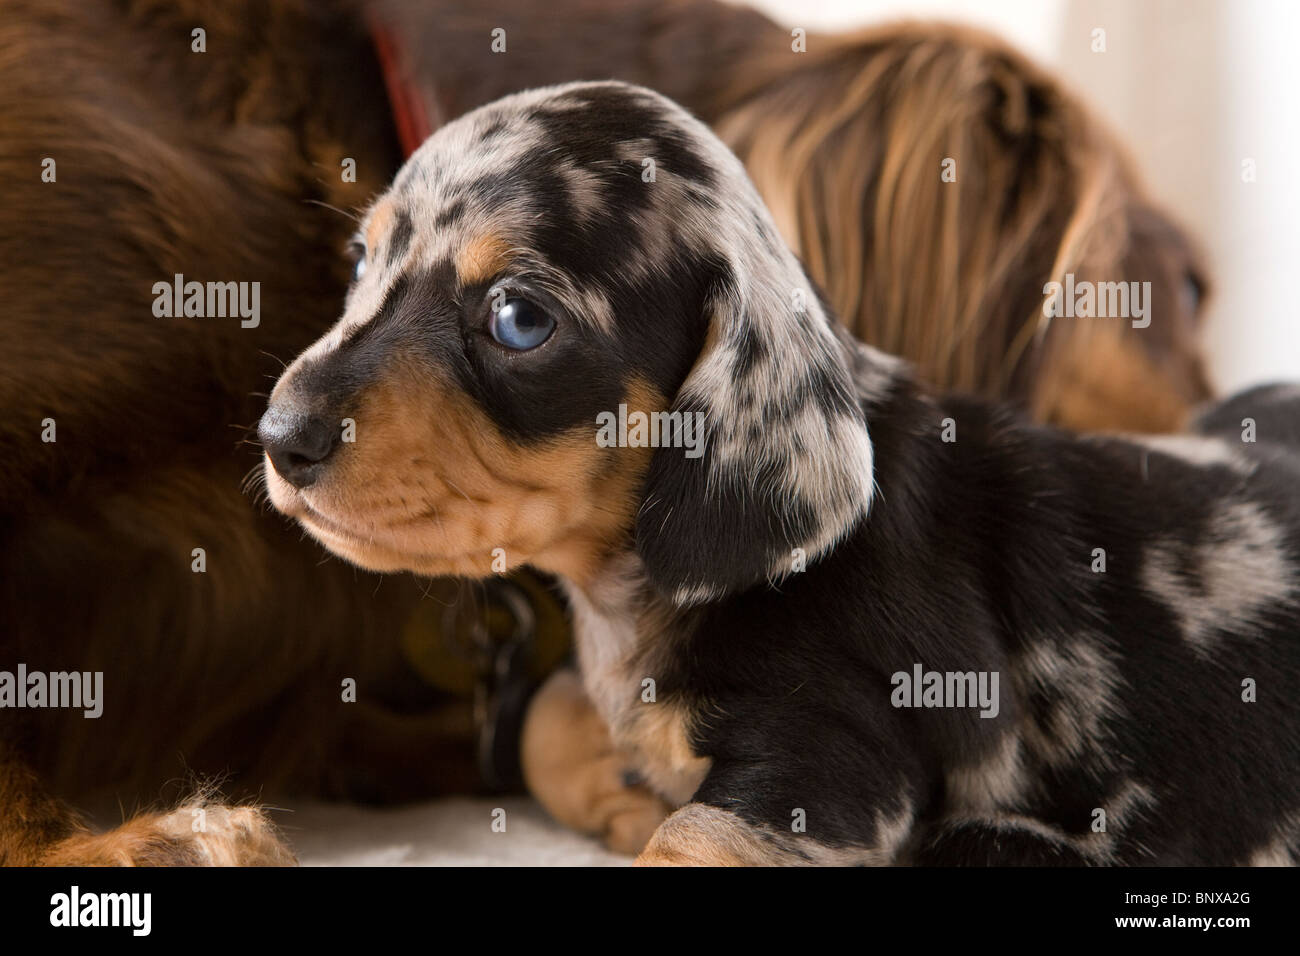 Cute Baby Blue Eyes Wallpaper Two Week Old Dapple Dachshund Puppies Stock Photo